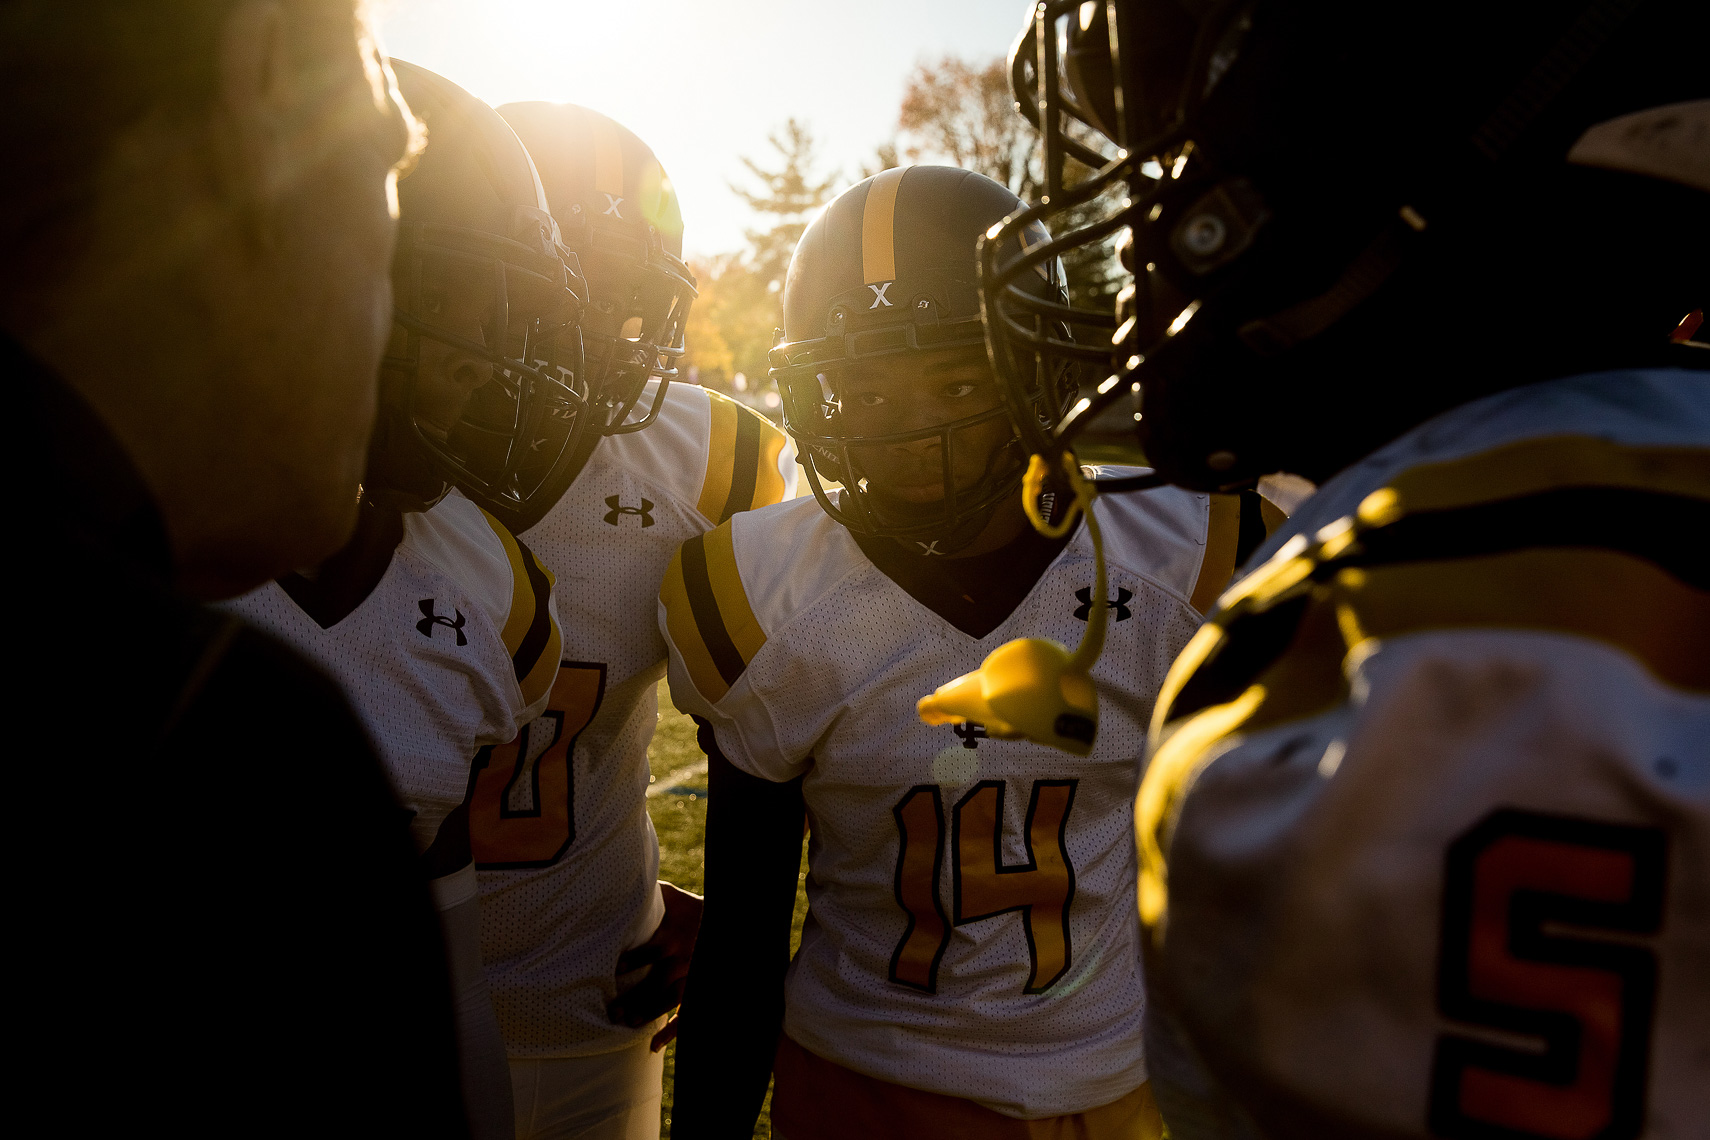 stfrances14_ St Frances Academy Panthers football Baltimore City poverty ESPN documentary MIAA Champions youth football team coached by former Gilman and Michigan football coach Biff Poggi Under Armour football photography